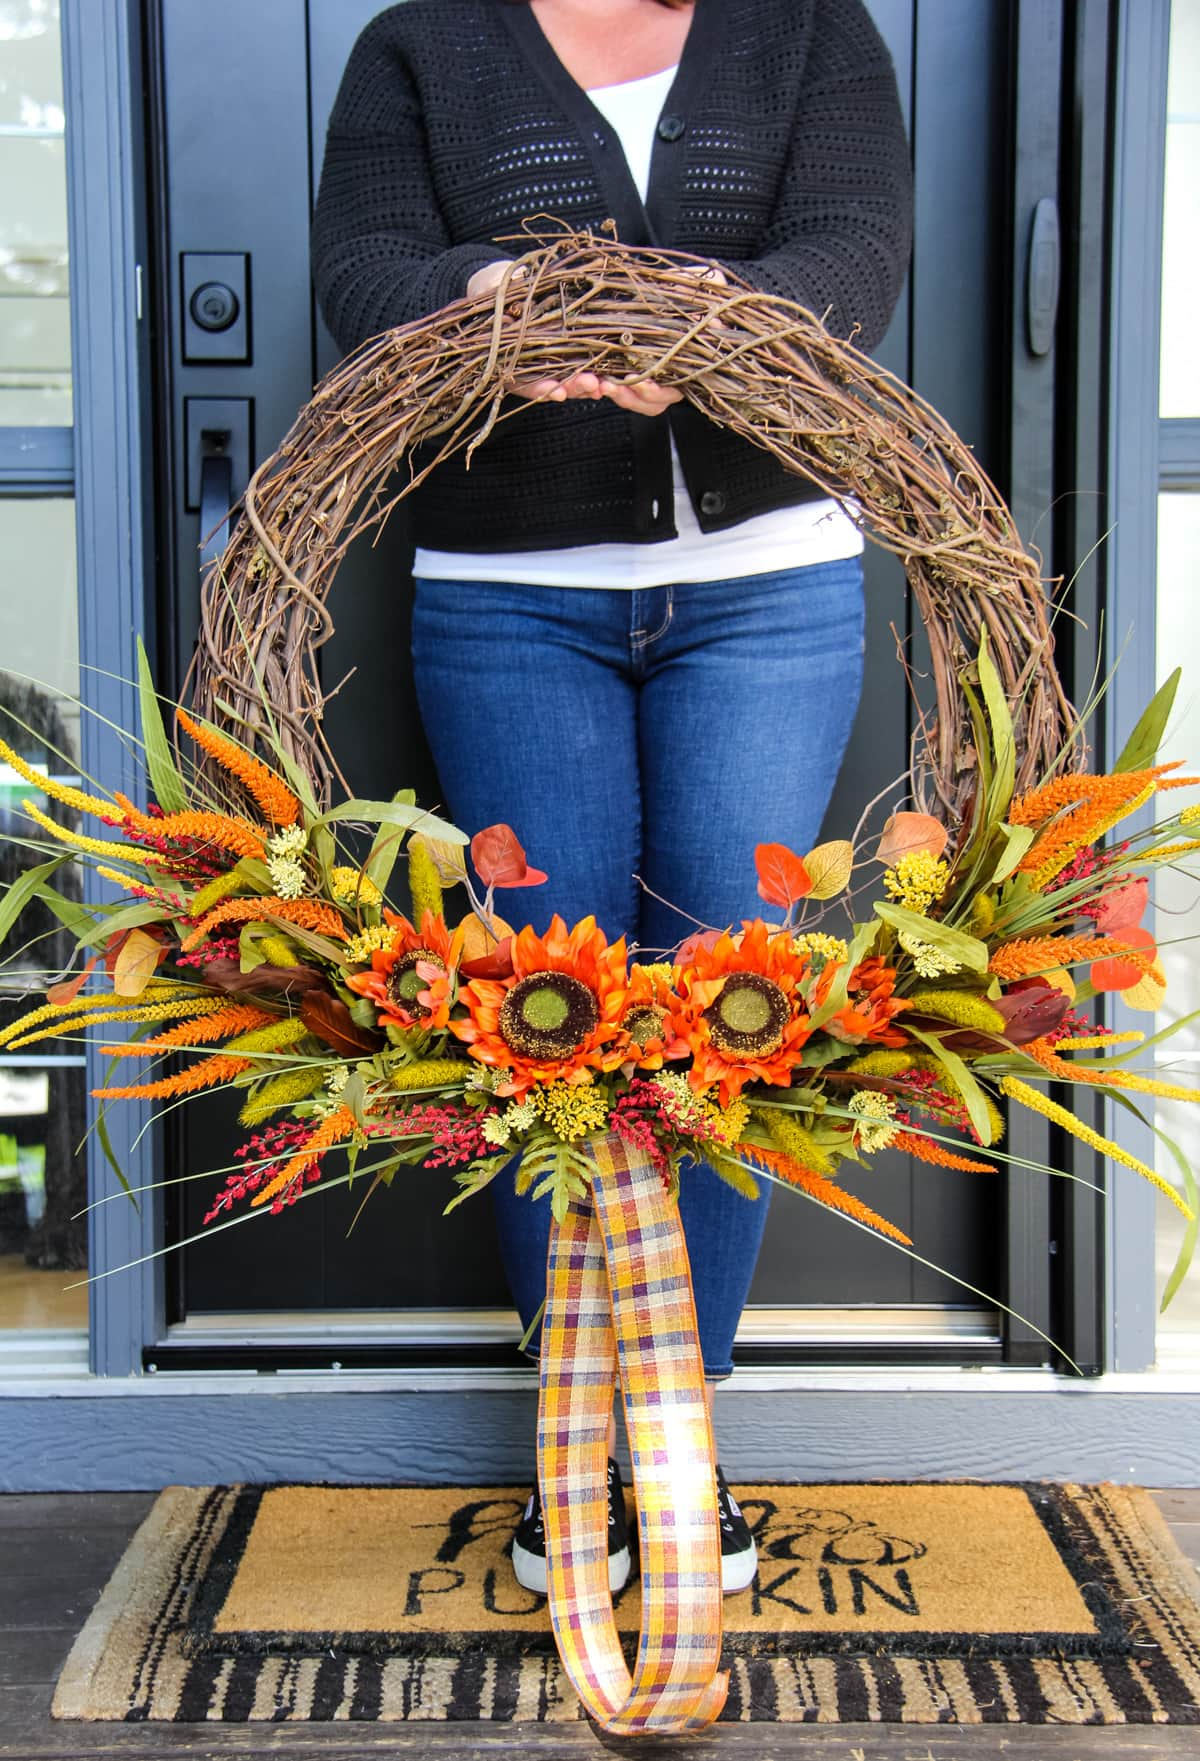 a woman stands in front of a black door holding a large grapevine wreath decorated with dried fall florals stems and a plaid ribbon